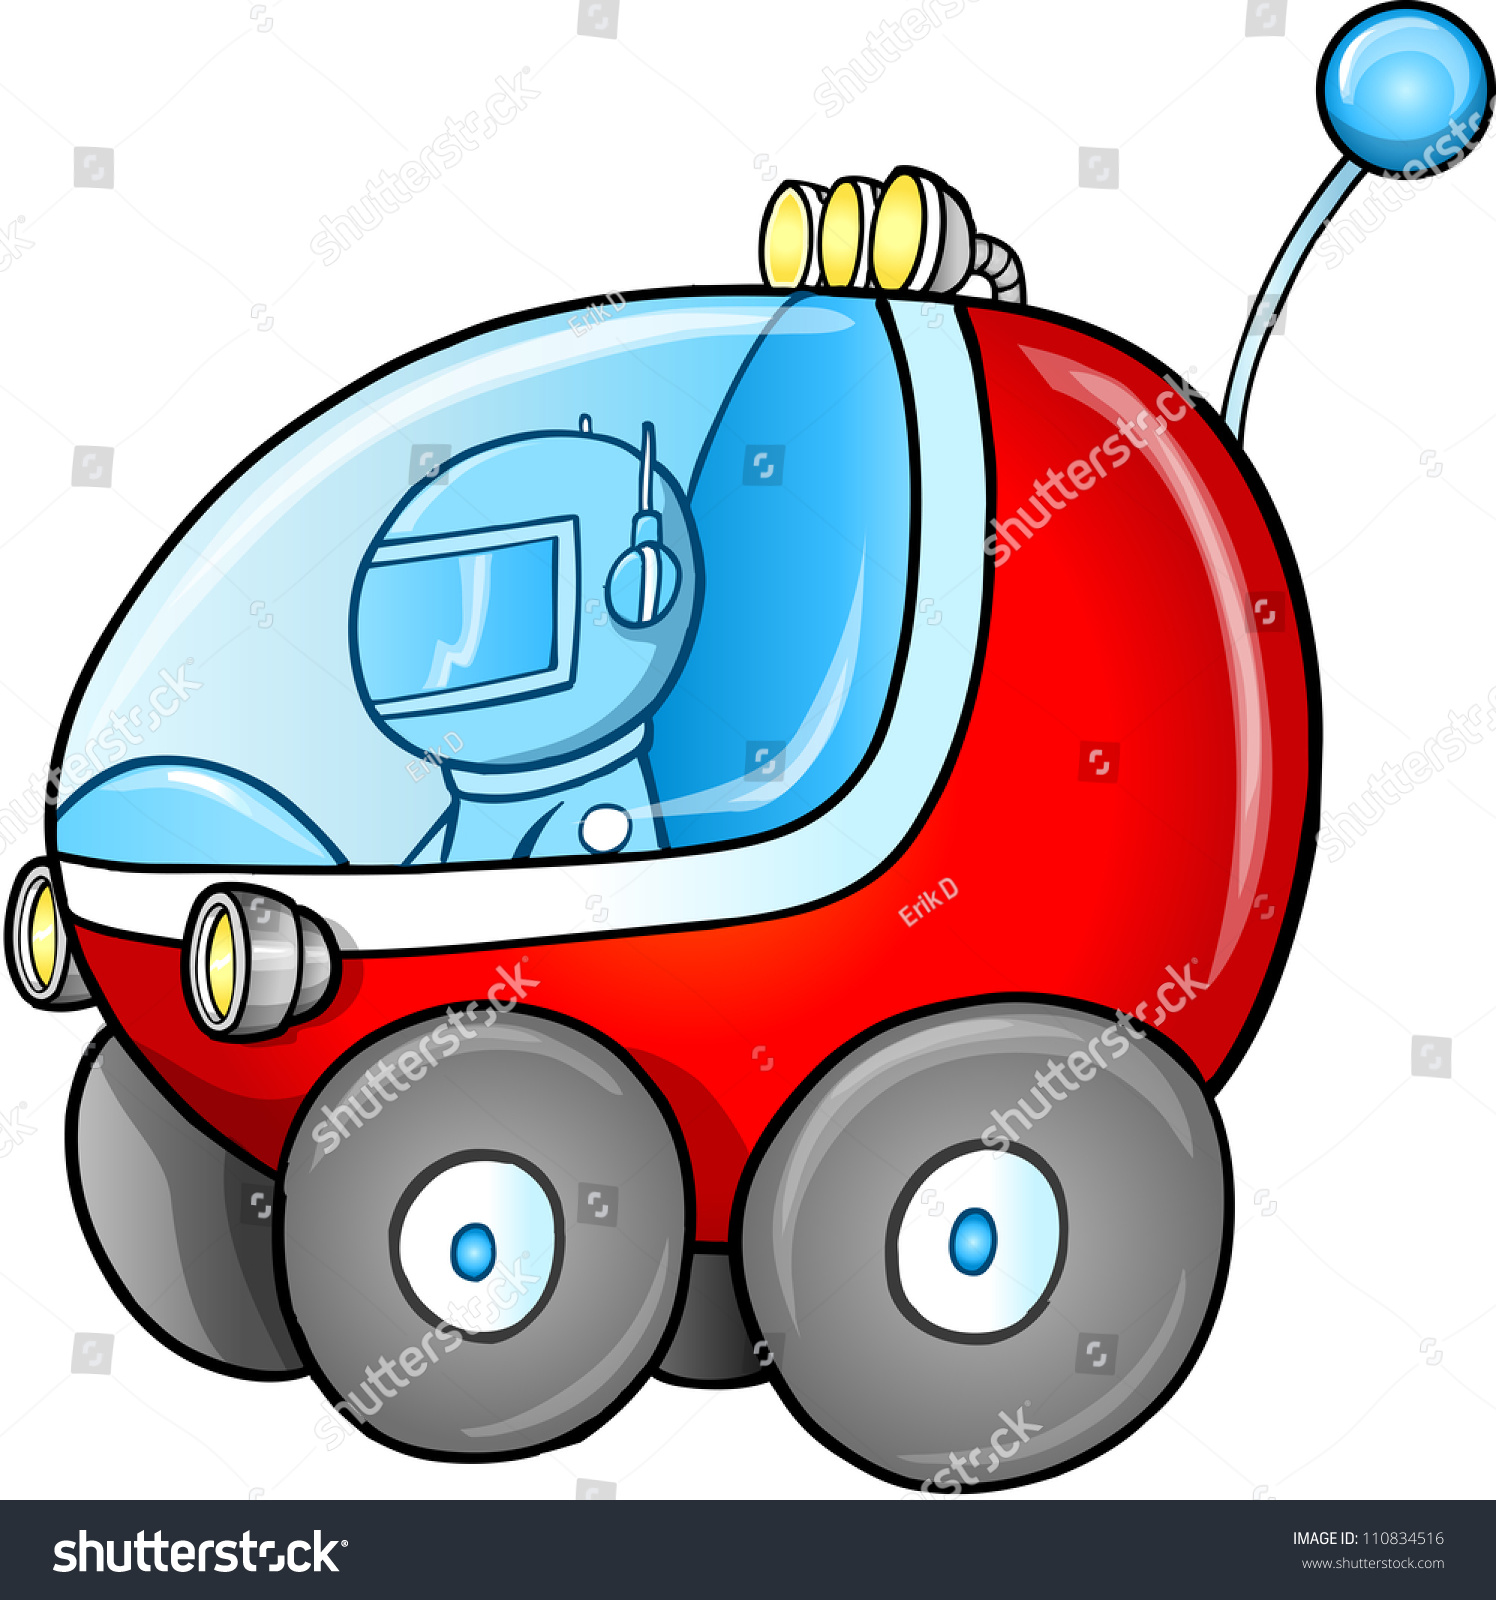 cute outer space moon buggy car vector illustration art 110834516 shutterstock. Black Bedroom Furniture Sets. Home Design Ideas